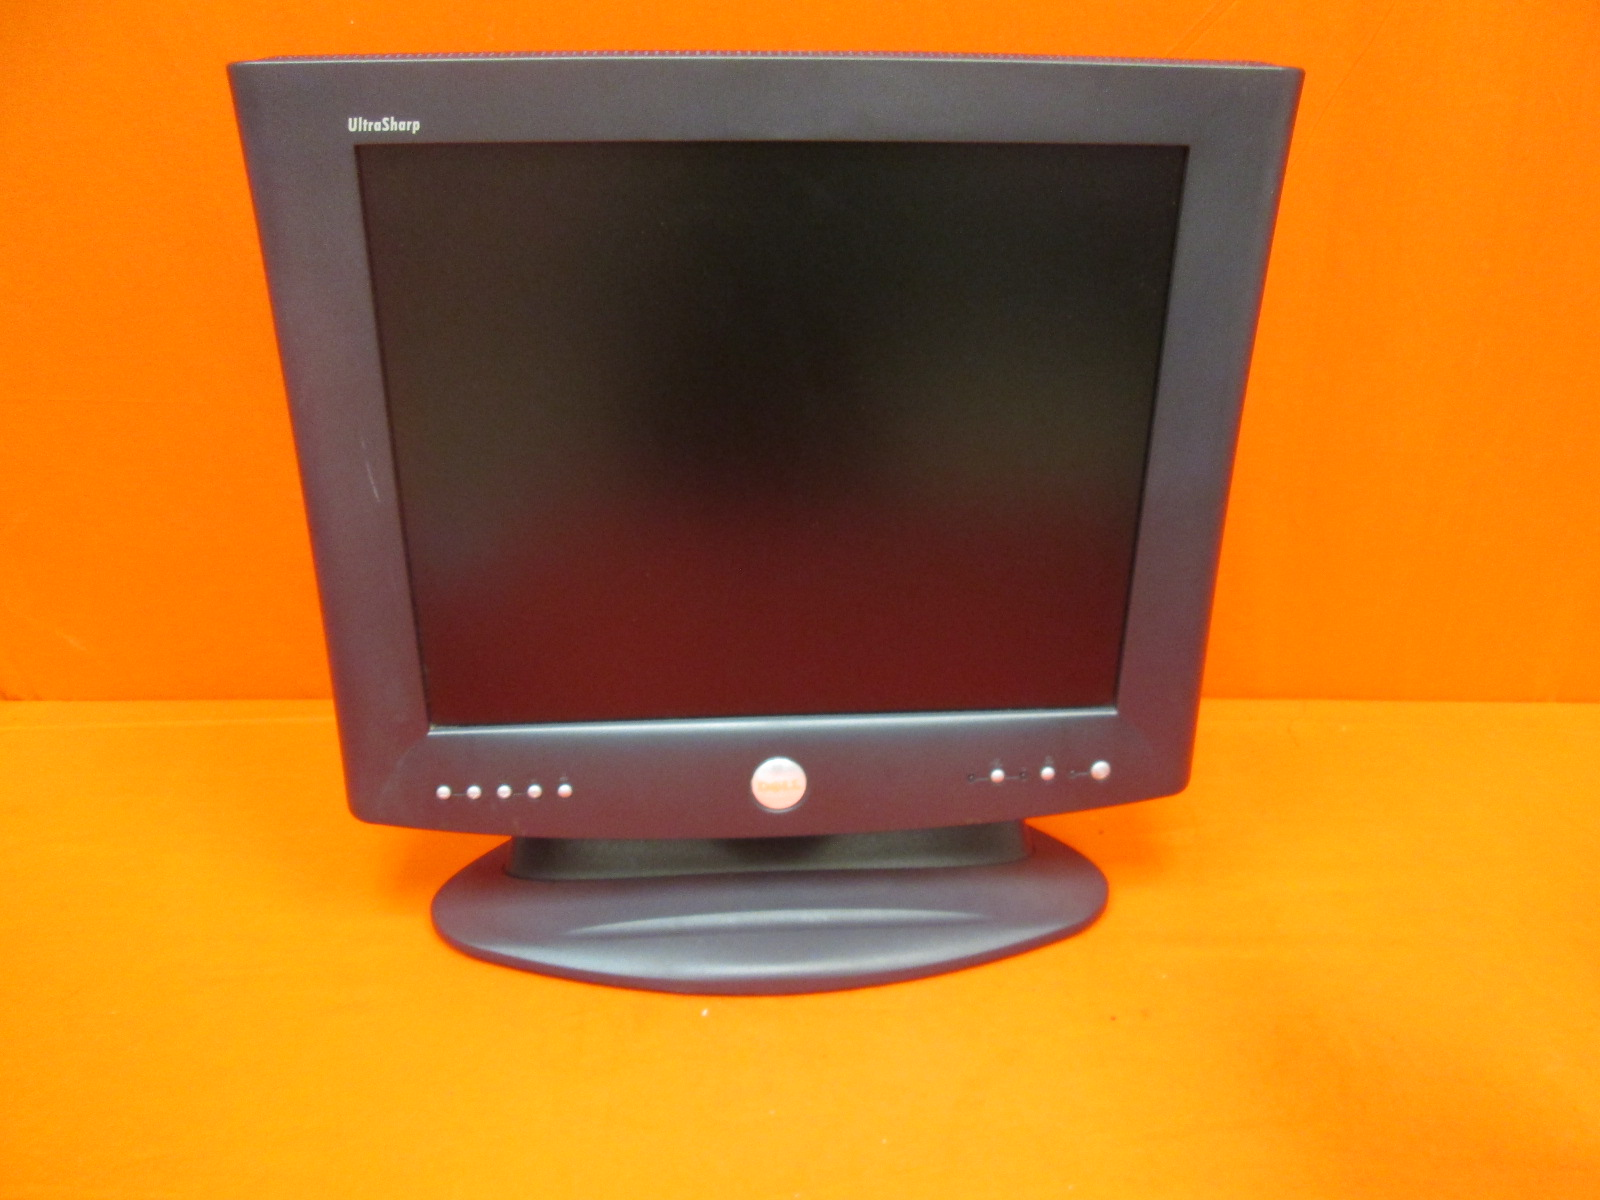 Dell Ultrasharp 1702FP 17 Inch LCD Monitor